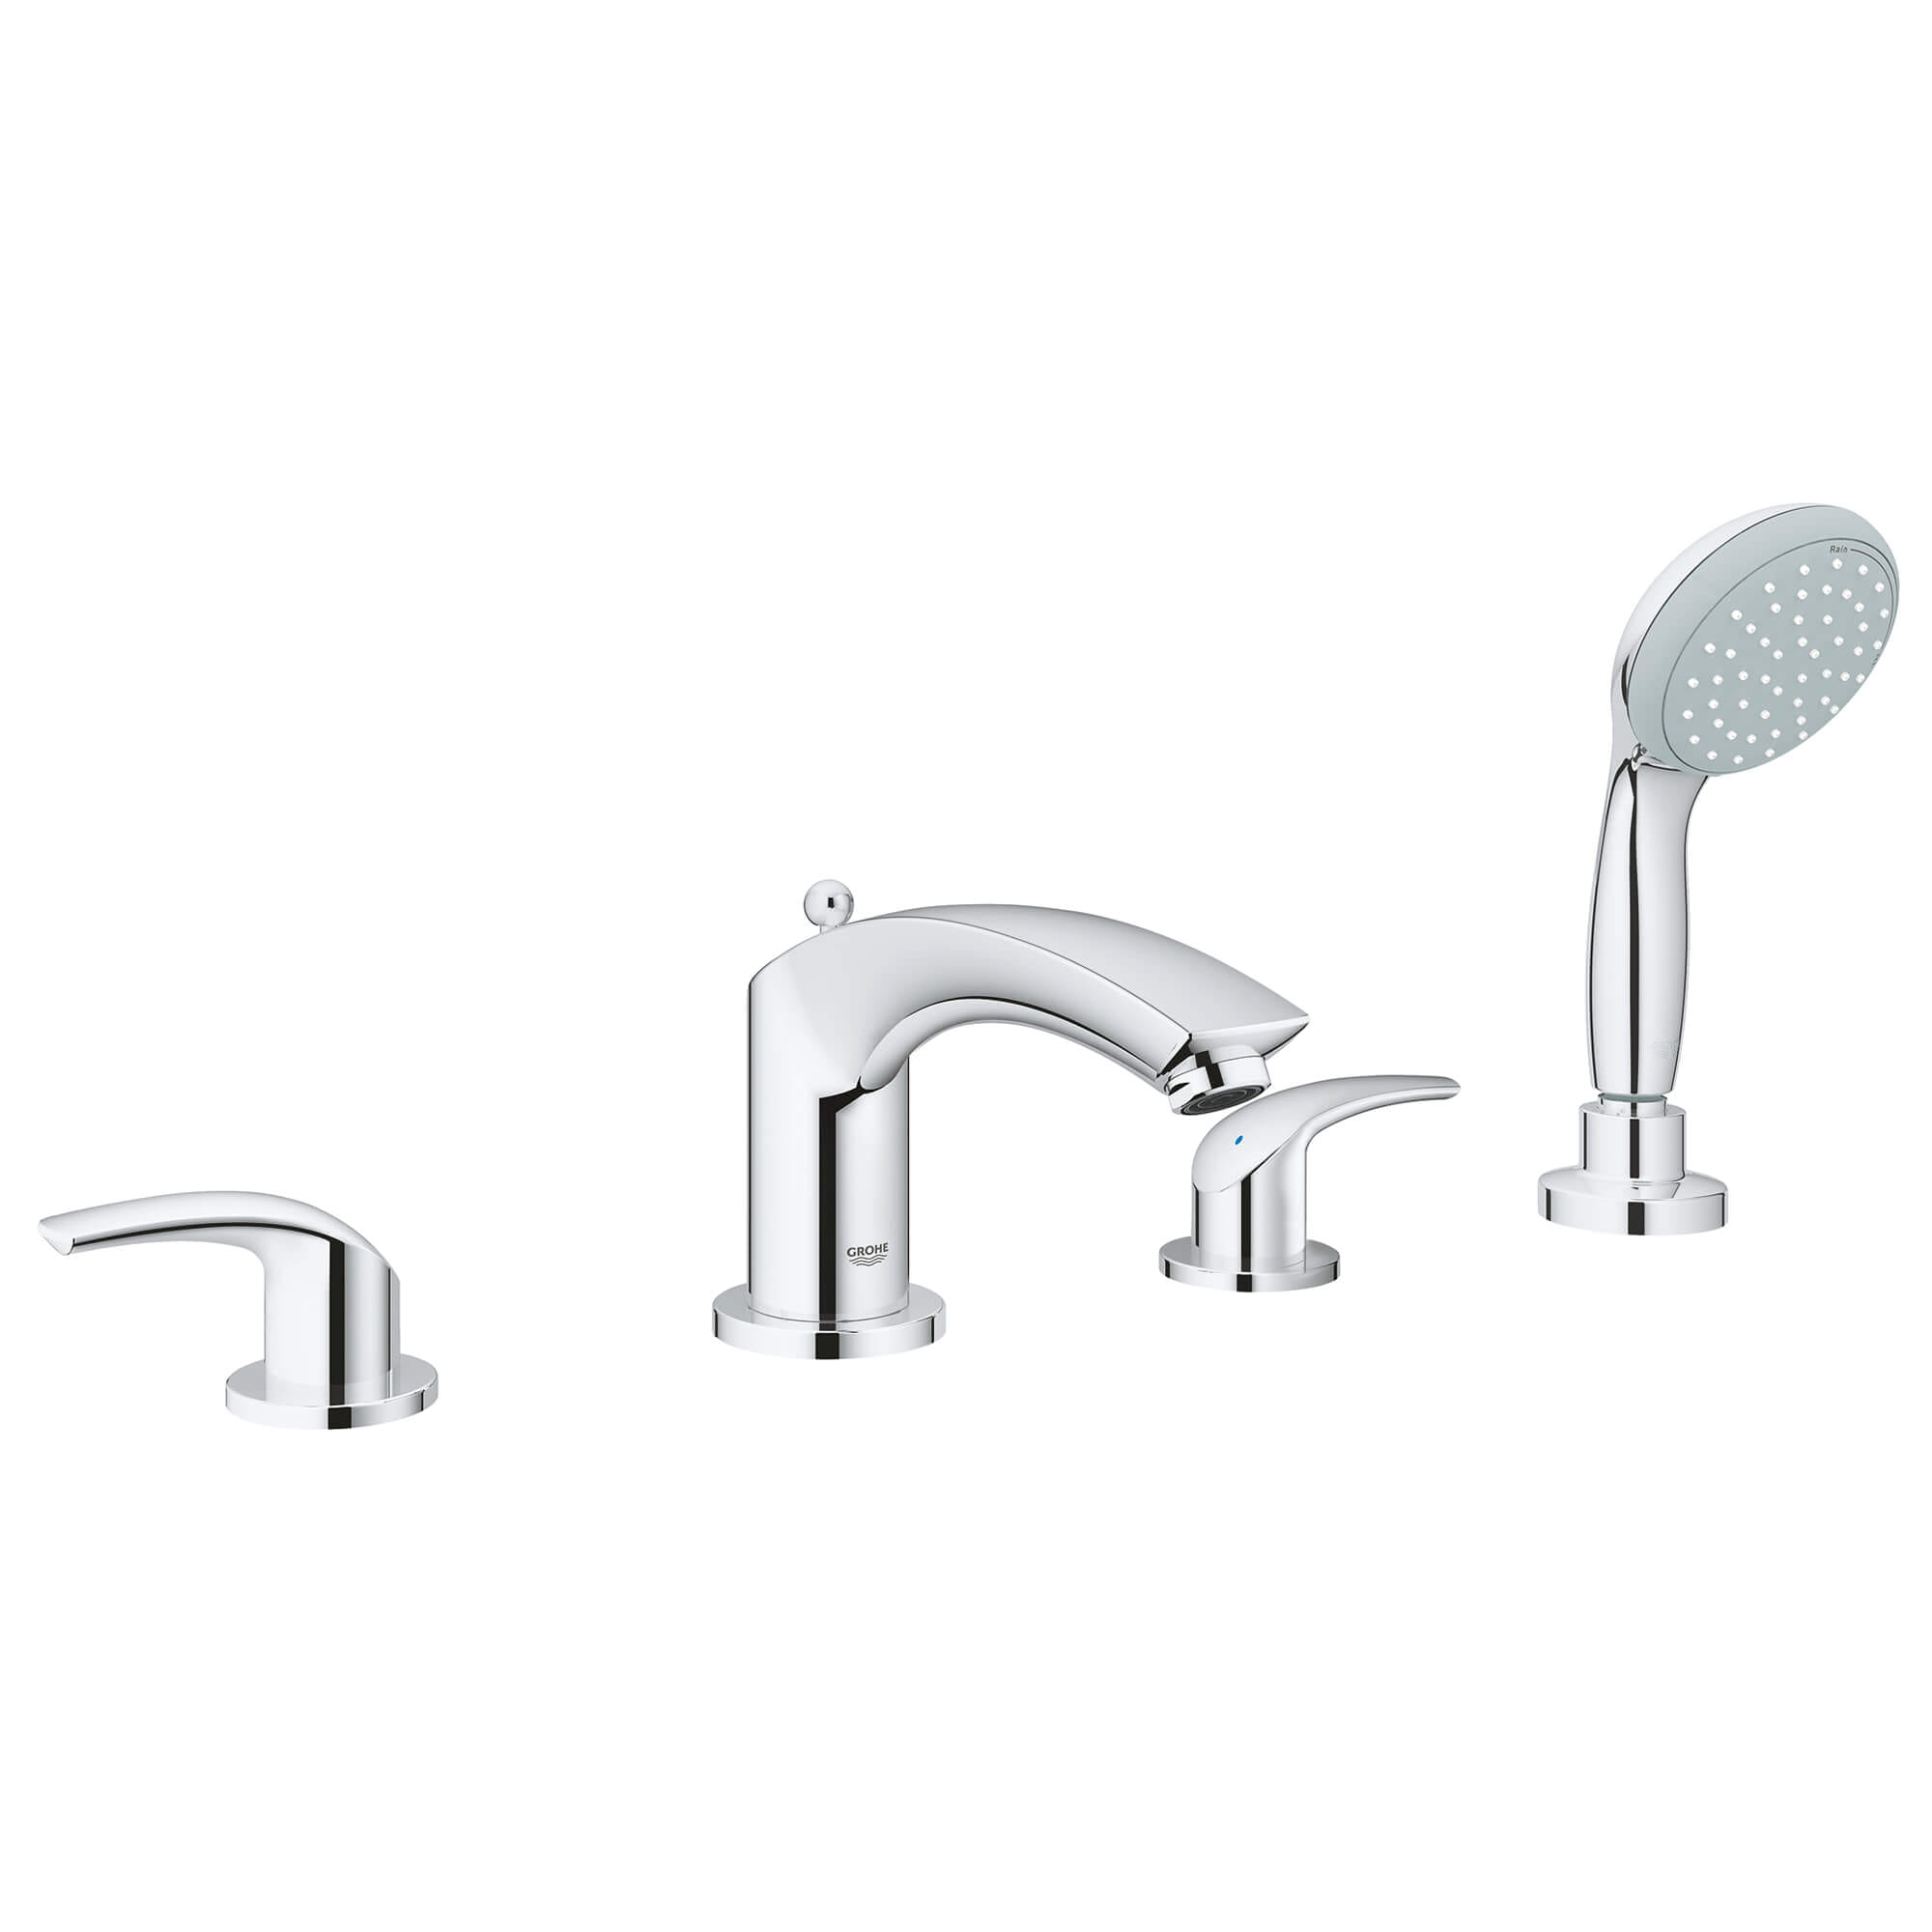 4 hole 2 handle deck mount roman tub faucet with 1 75 gpm hand shower